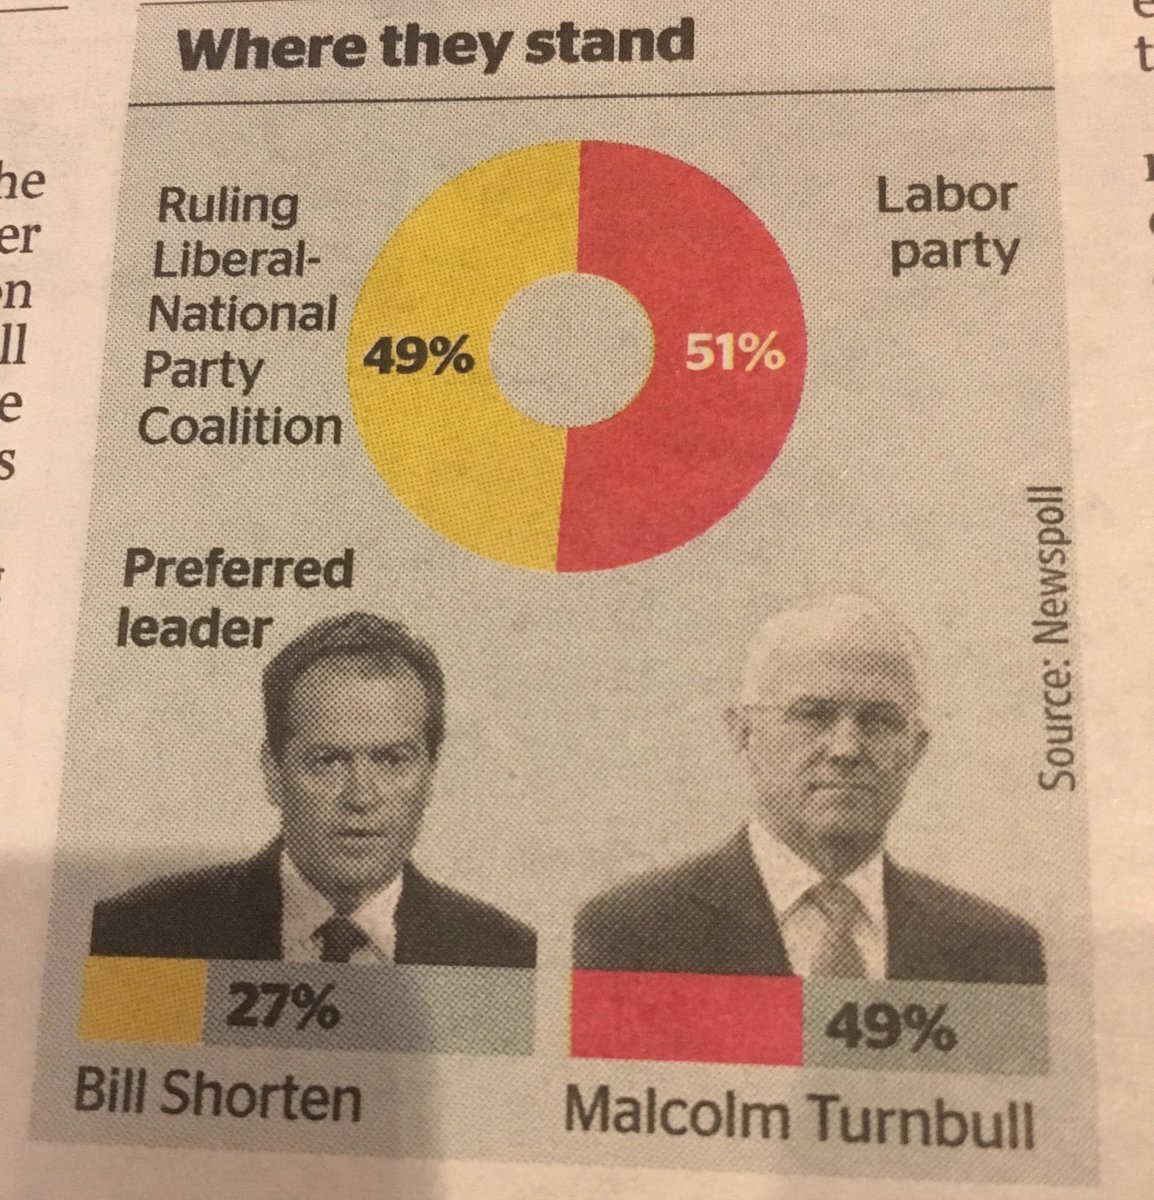 Australia's political leaders according to the London Times ... https://t.co/kXNIvPS6cm